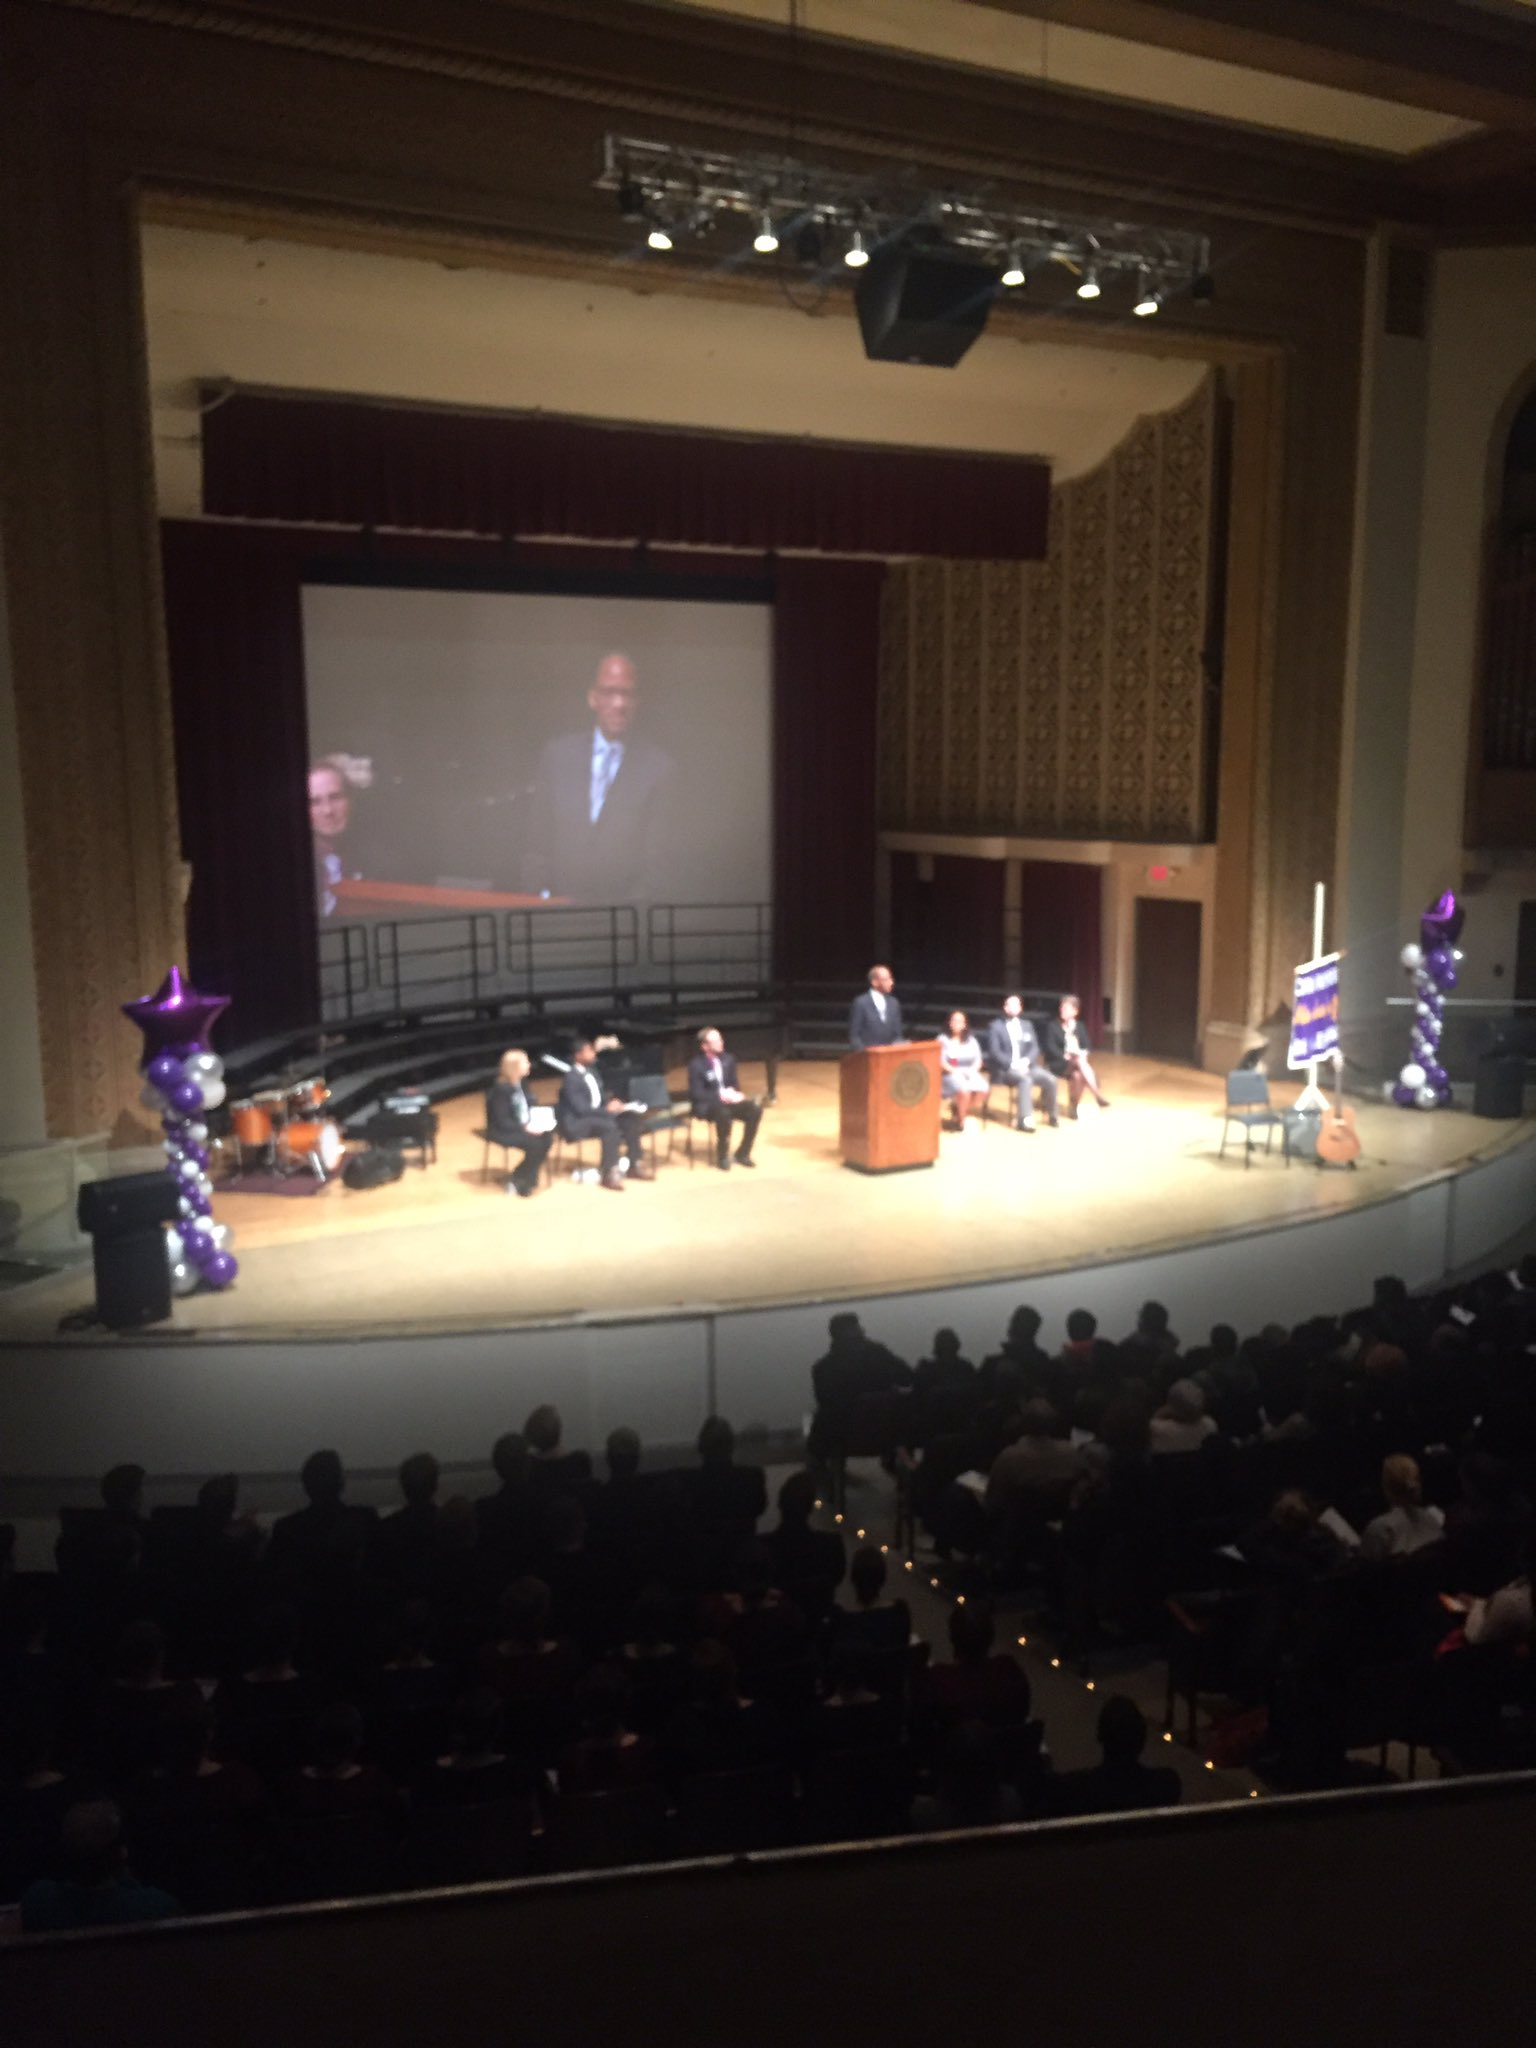 """""""This is my first formal visit to Capital University...what took y'all so long?"""" - Wil Haygood 😂👏 #capfam #MLKDayOfLearning https://t.co/ru57vHOj8f"""